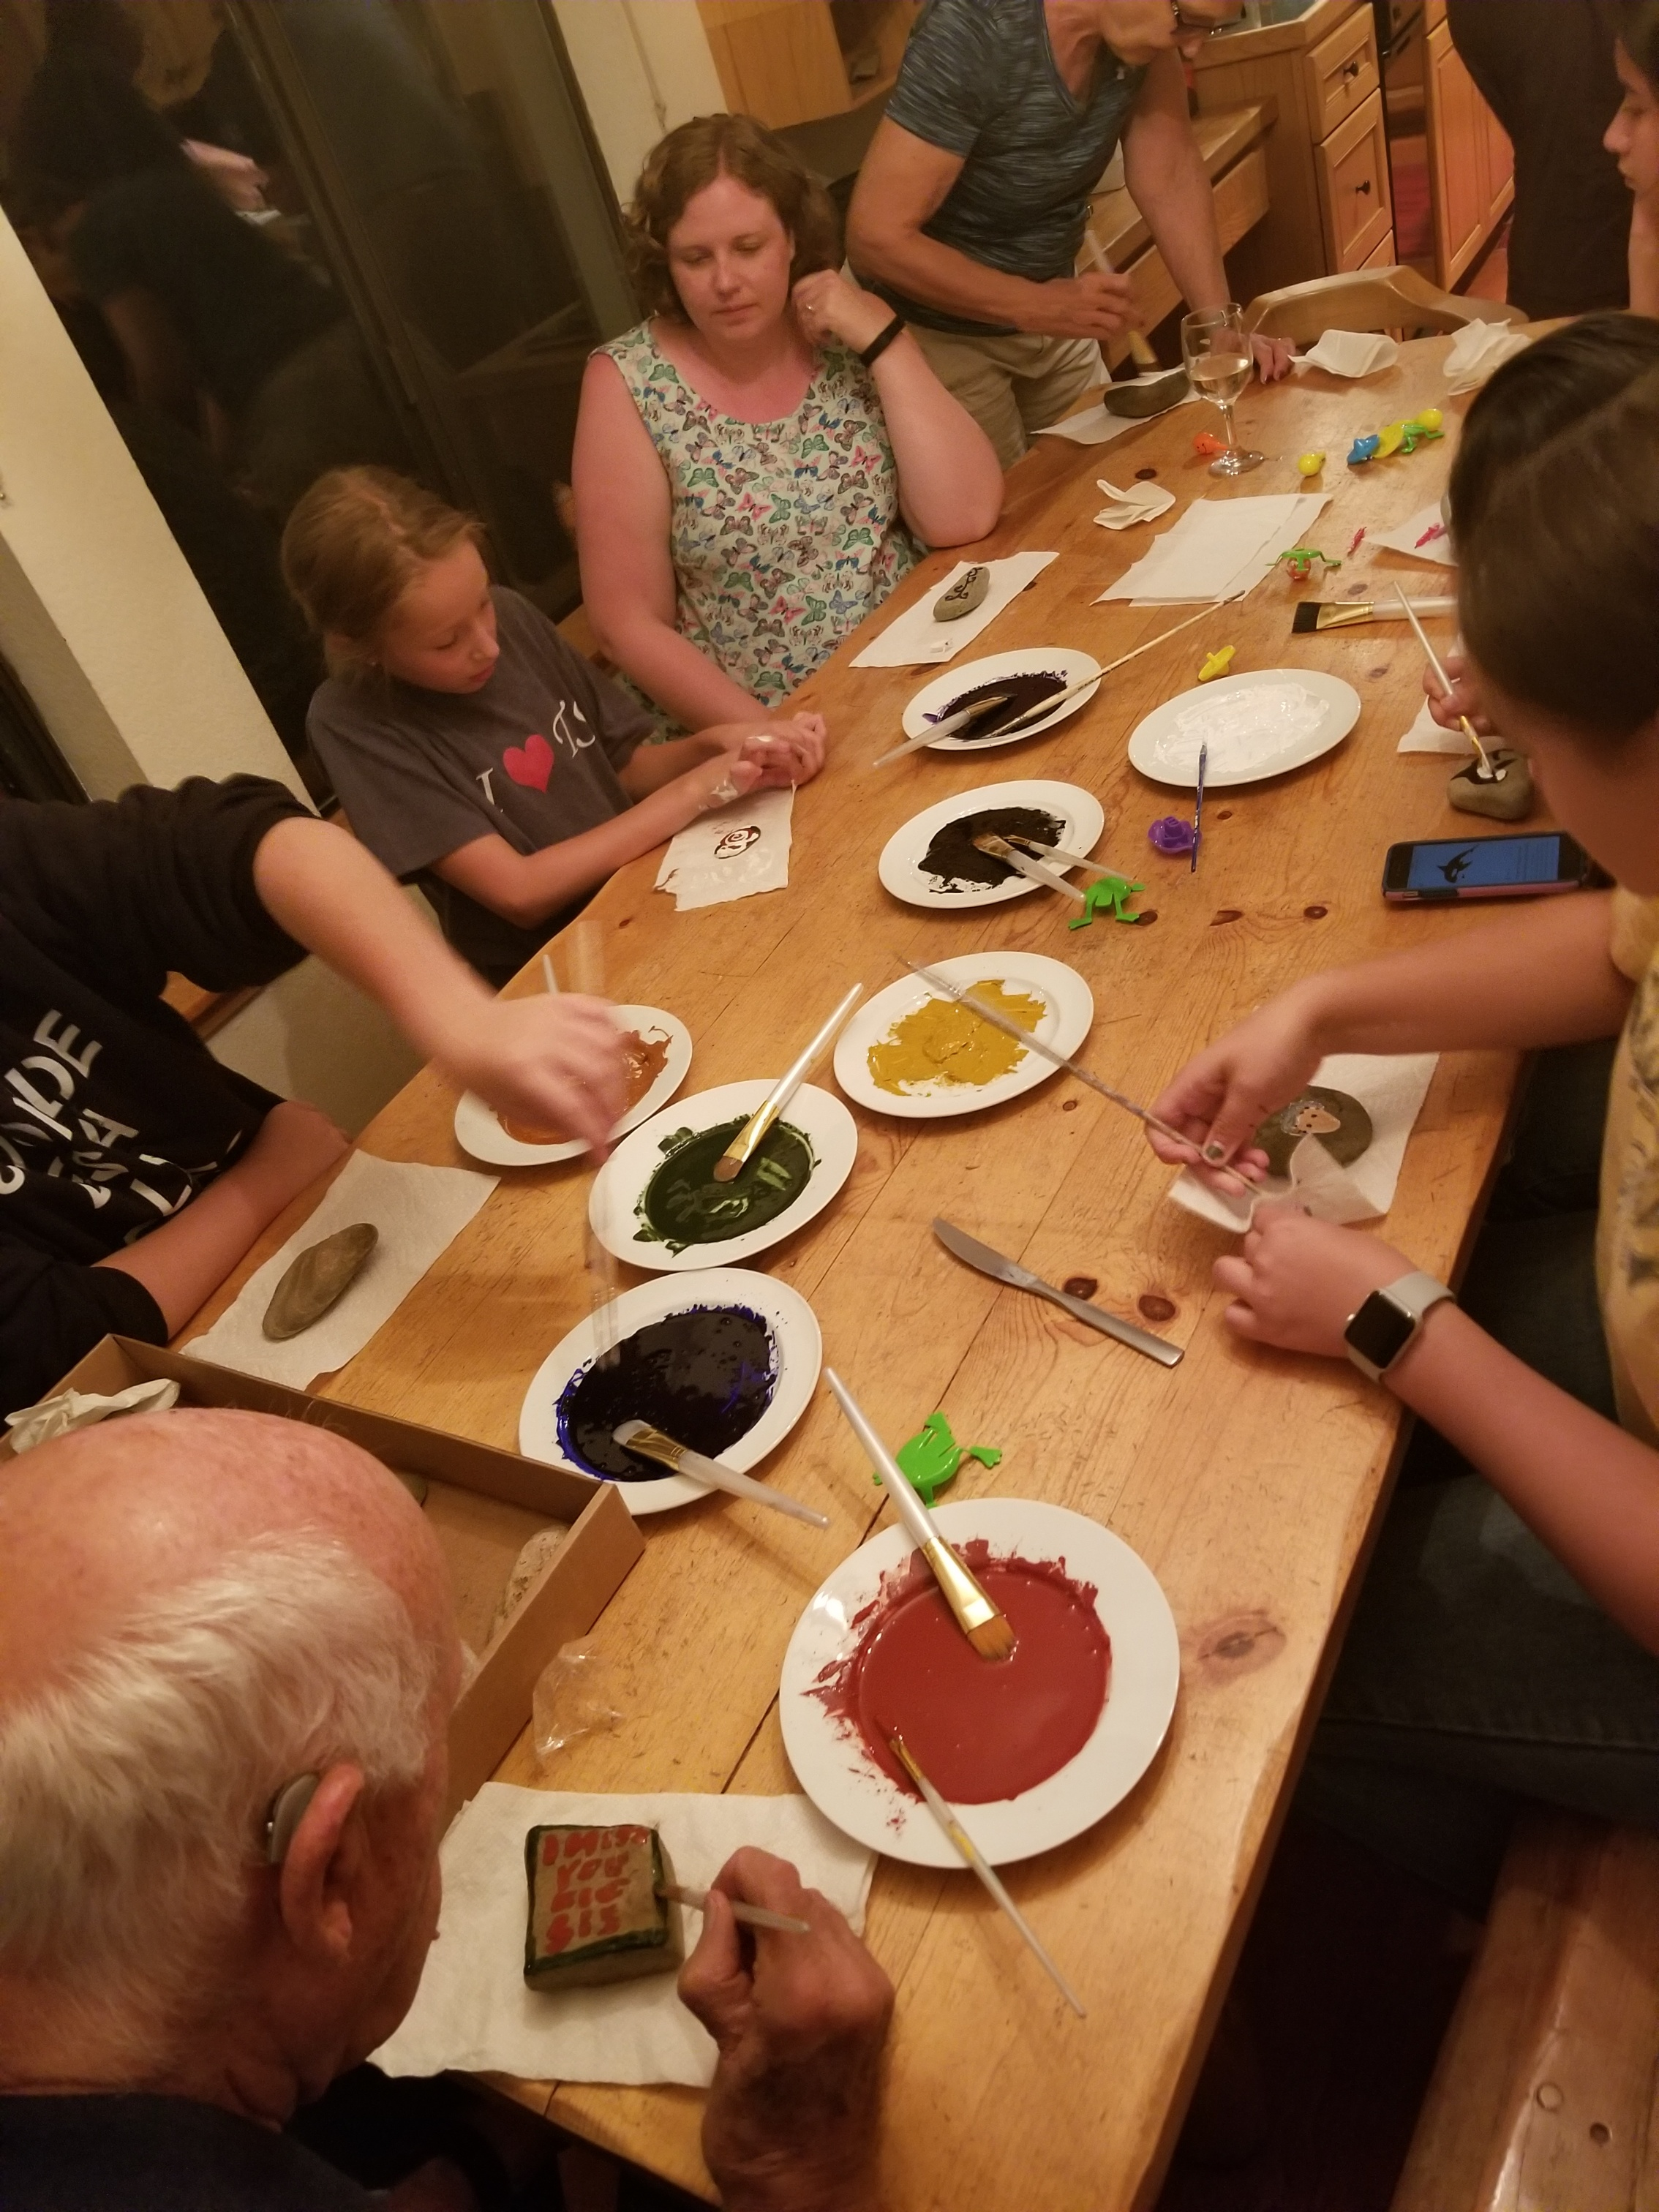 My family gathered for an evening of river stone painting with earth pigments and walnut oil, Ketchum, Idaho.